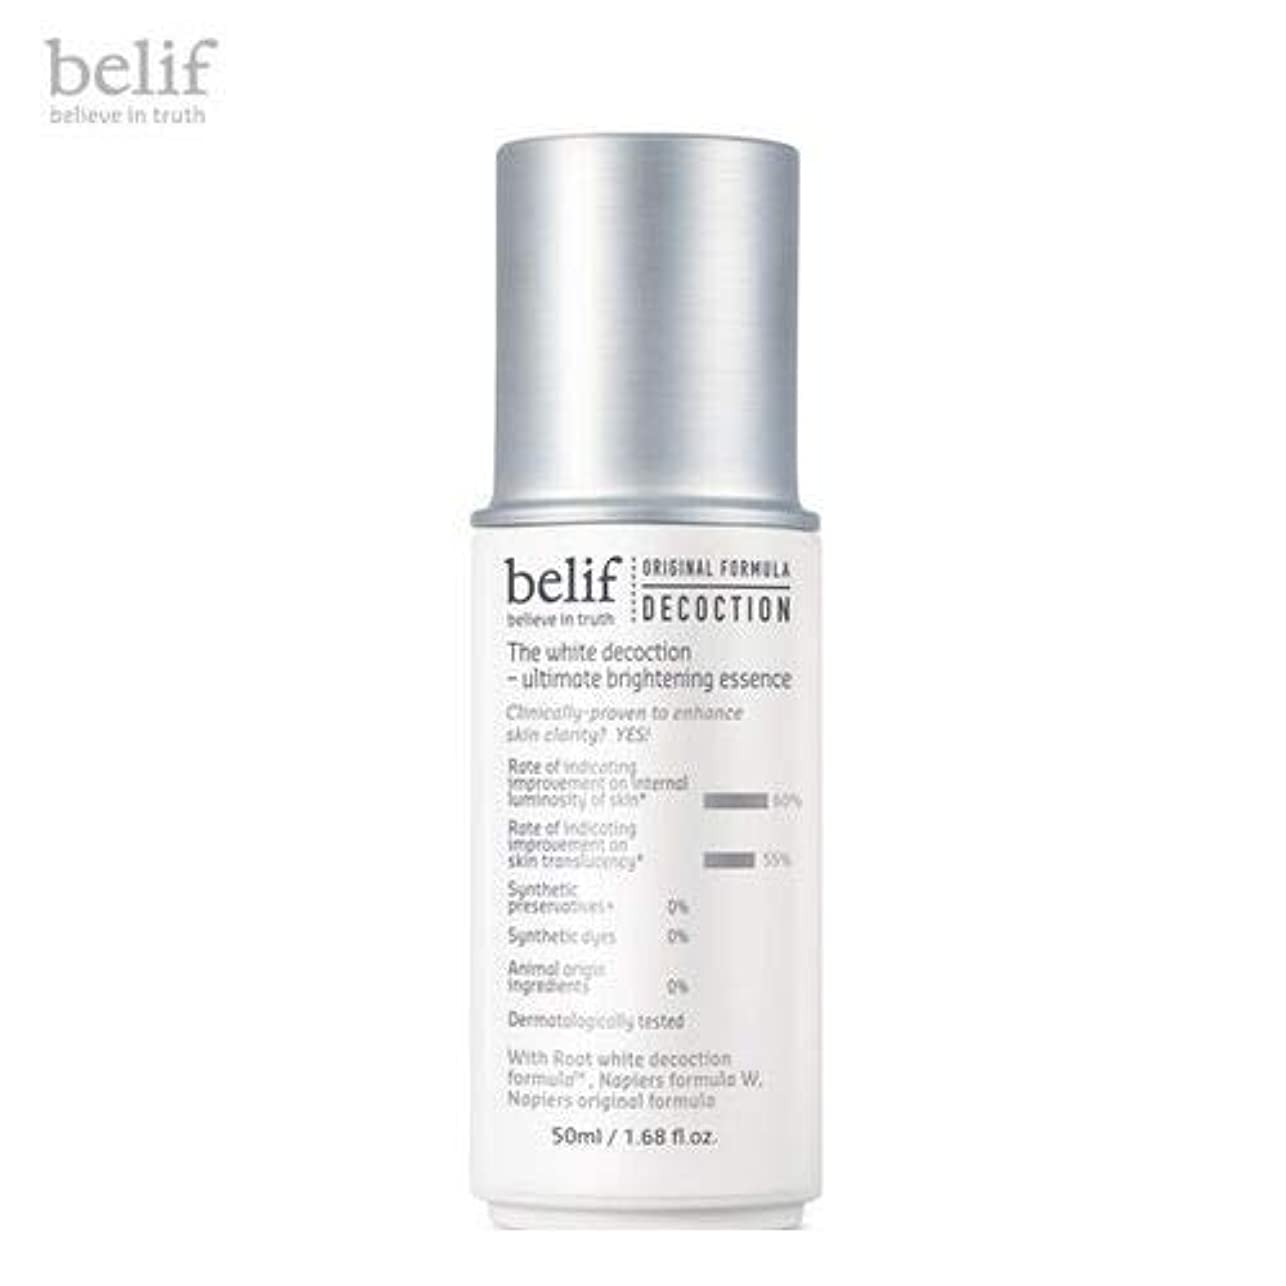 リー待つ署名belif The White Decoction - Ultimate Brightening Essence 50ml [並行輸入品]